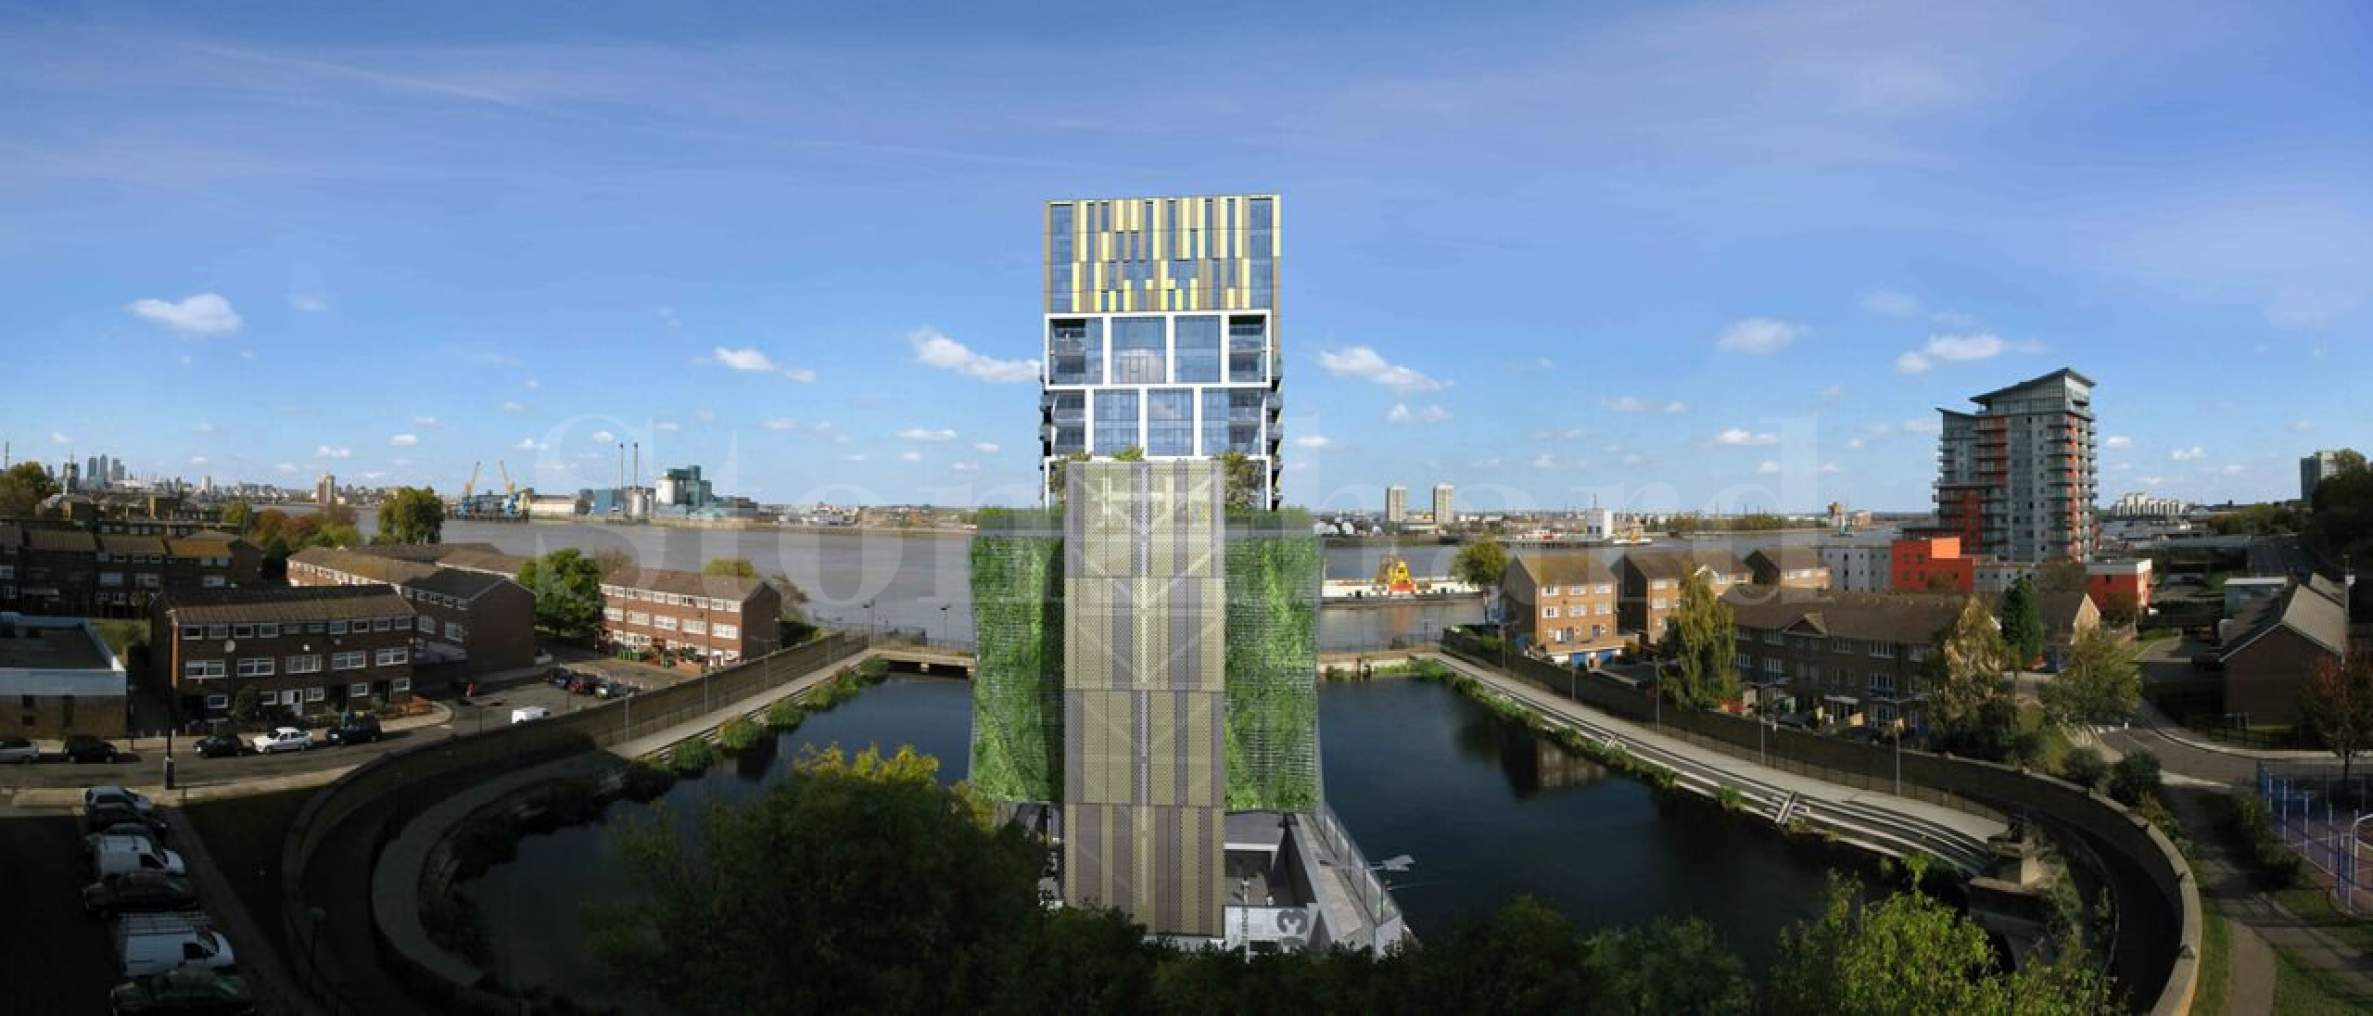 Boutique waterfront tower with competitive prices1 - Stonehard